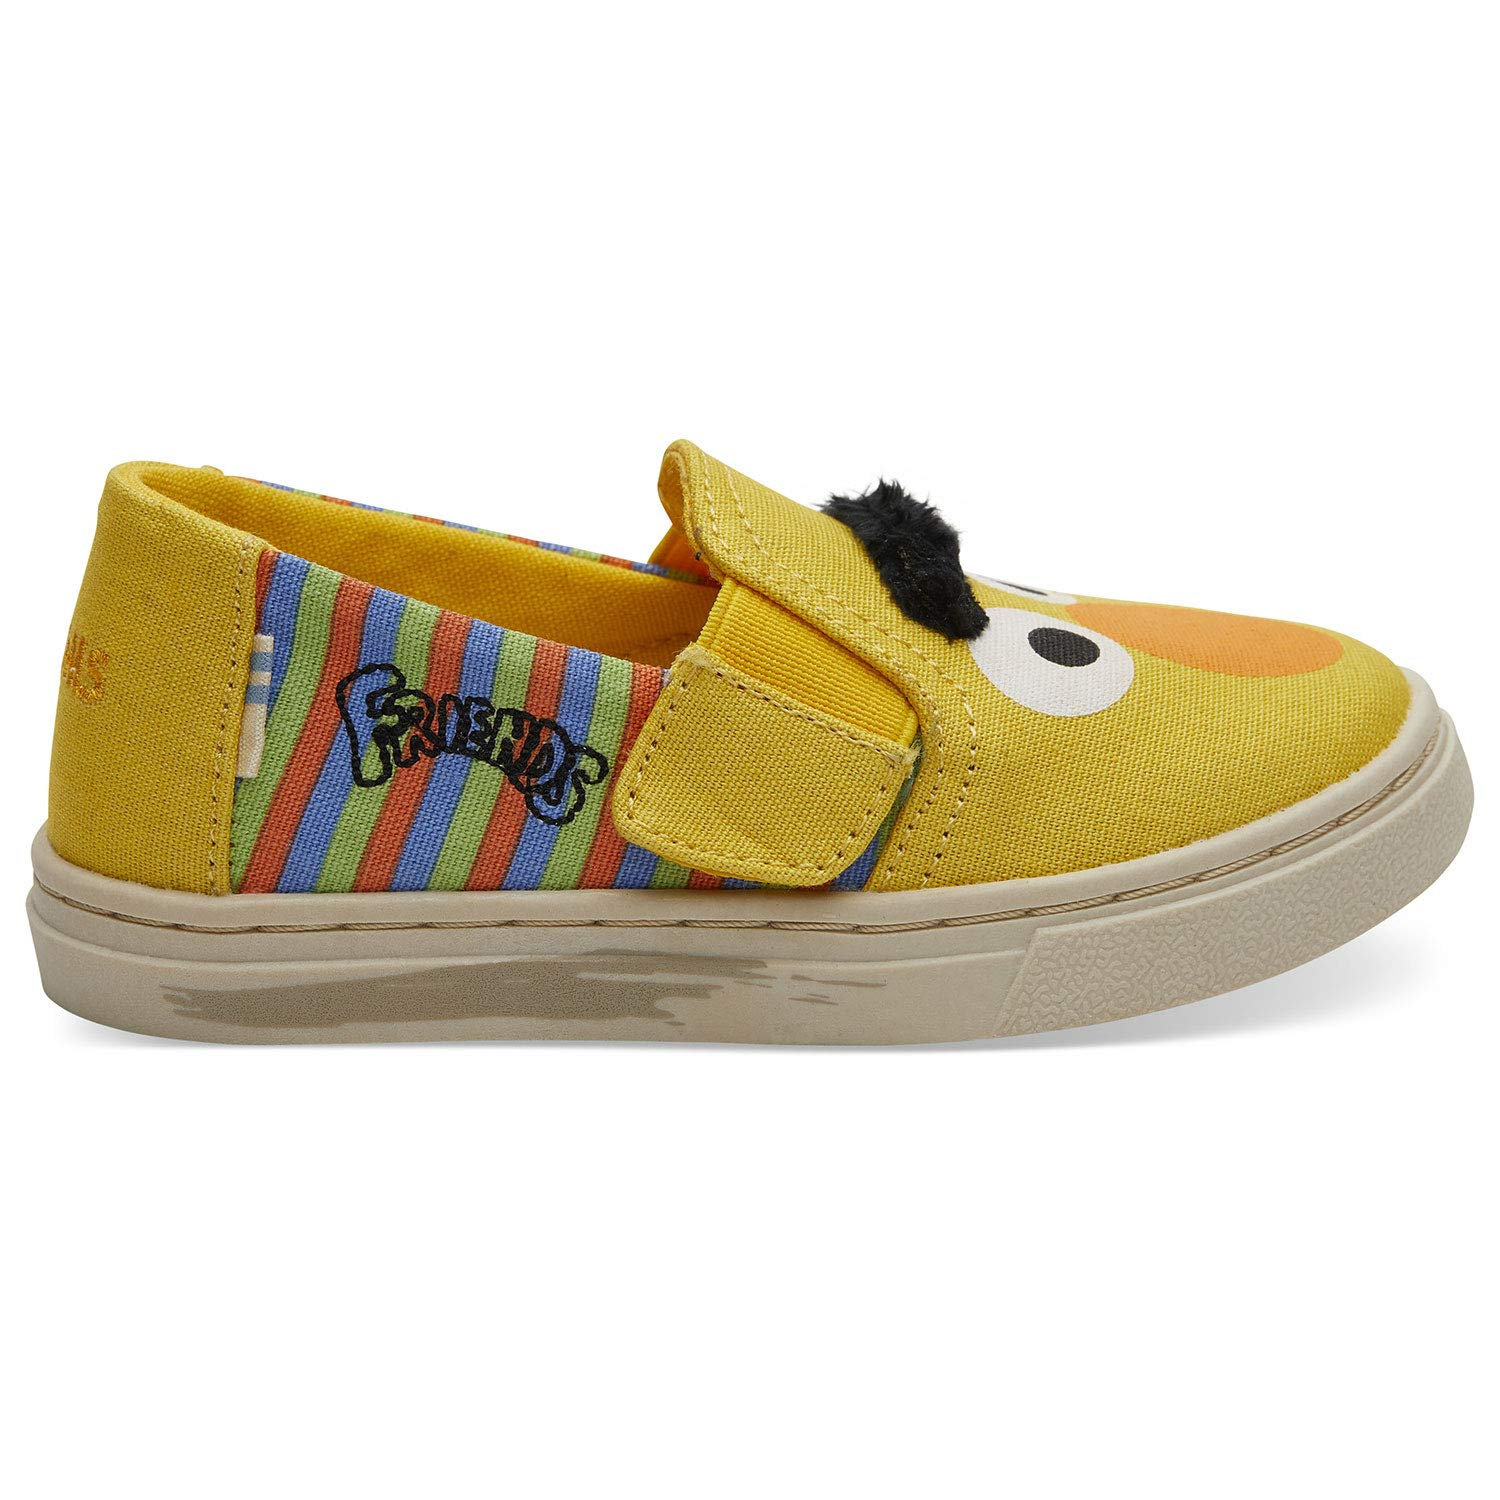 TOMS Sesame Street X Bert and Ernie Face Tiny Luca Slip-Ons 10013641 (Size: 6) Yellow